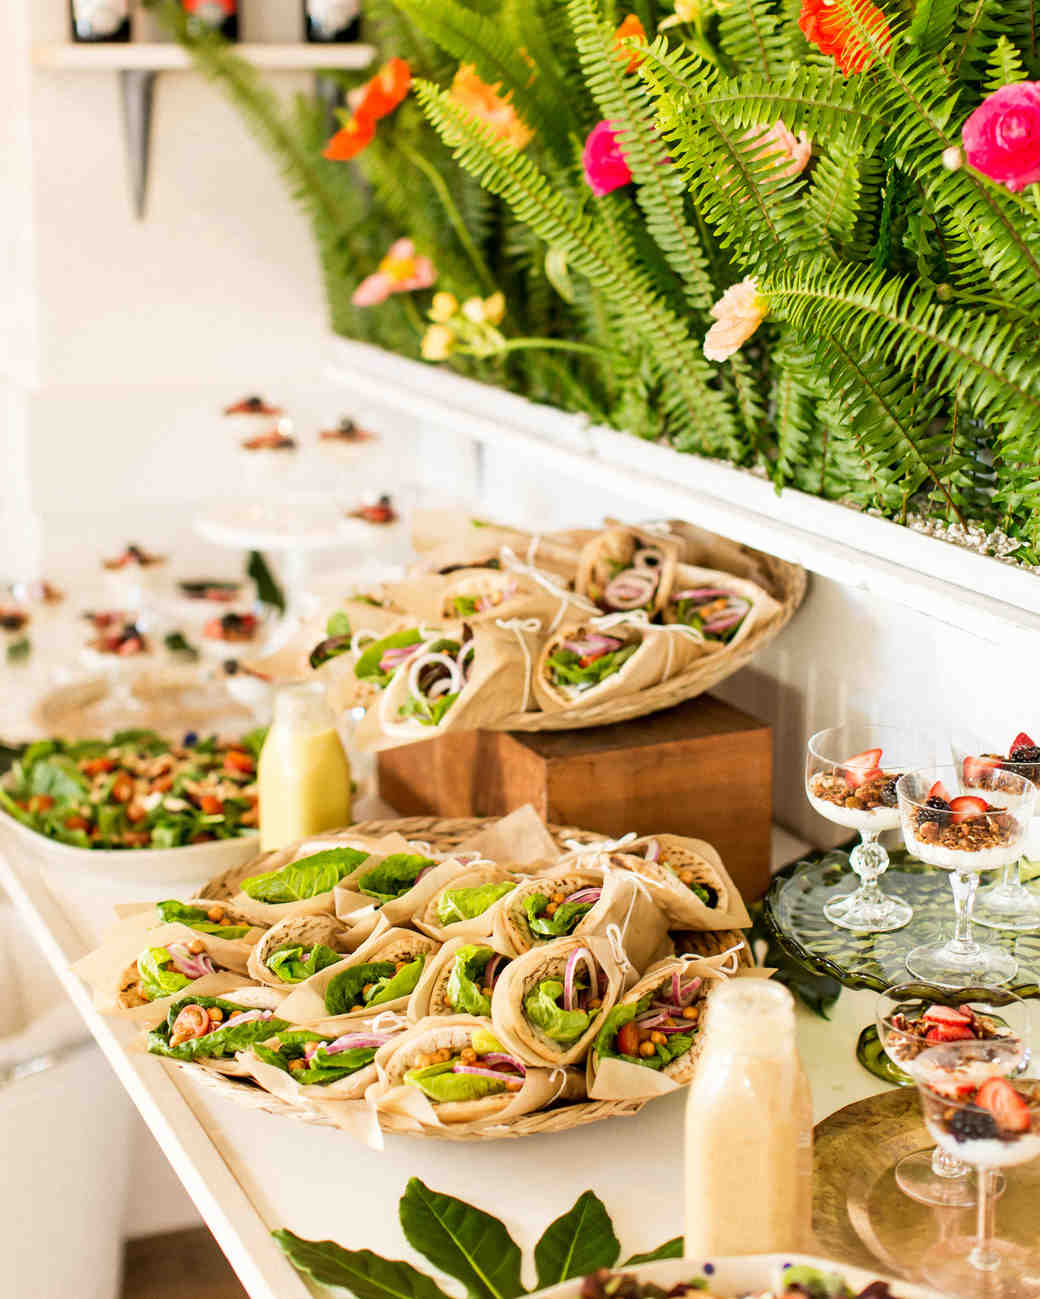 Wedding Finger Food Buffet: 20 Delicious Bites To Serve At Your Bridal Shower